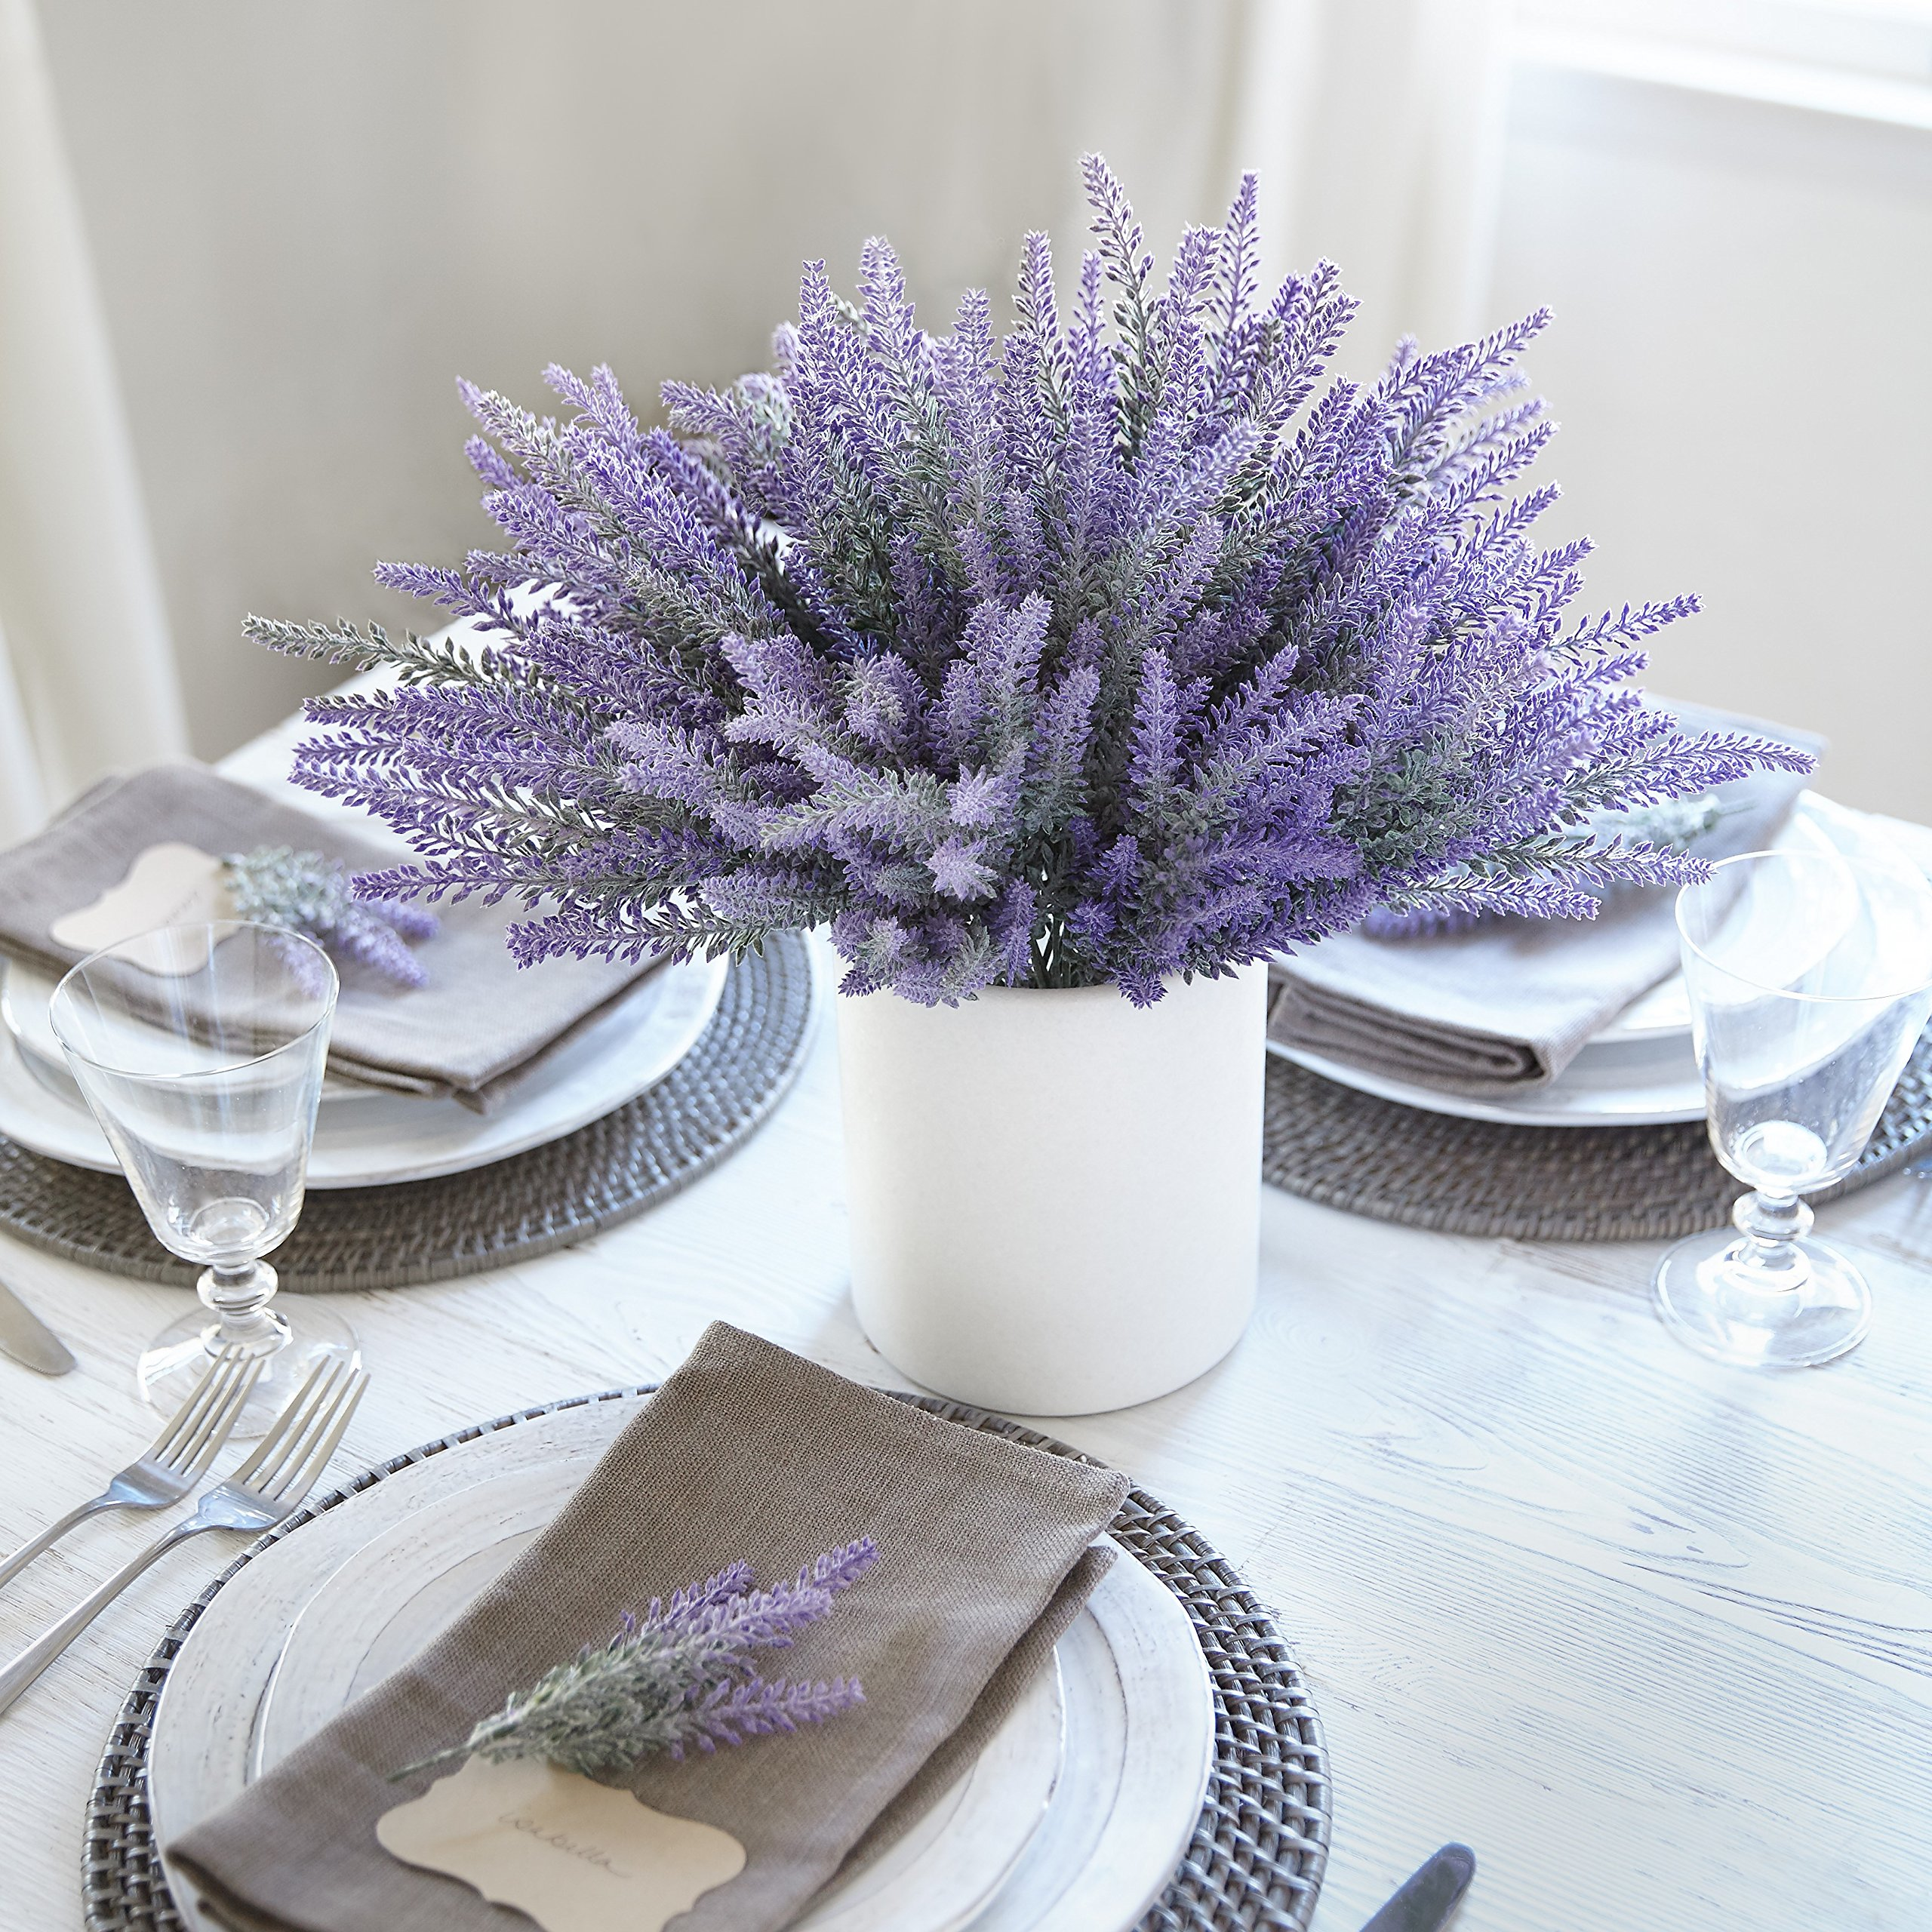 Butterfly Craze Artificial Lavender Flowers 4 large pieces to make a bountiful flower arrangement nearly natural fake plant to brighten up your home party and wedding decor (4 Pieces)